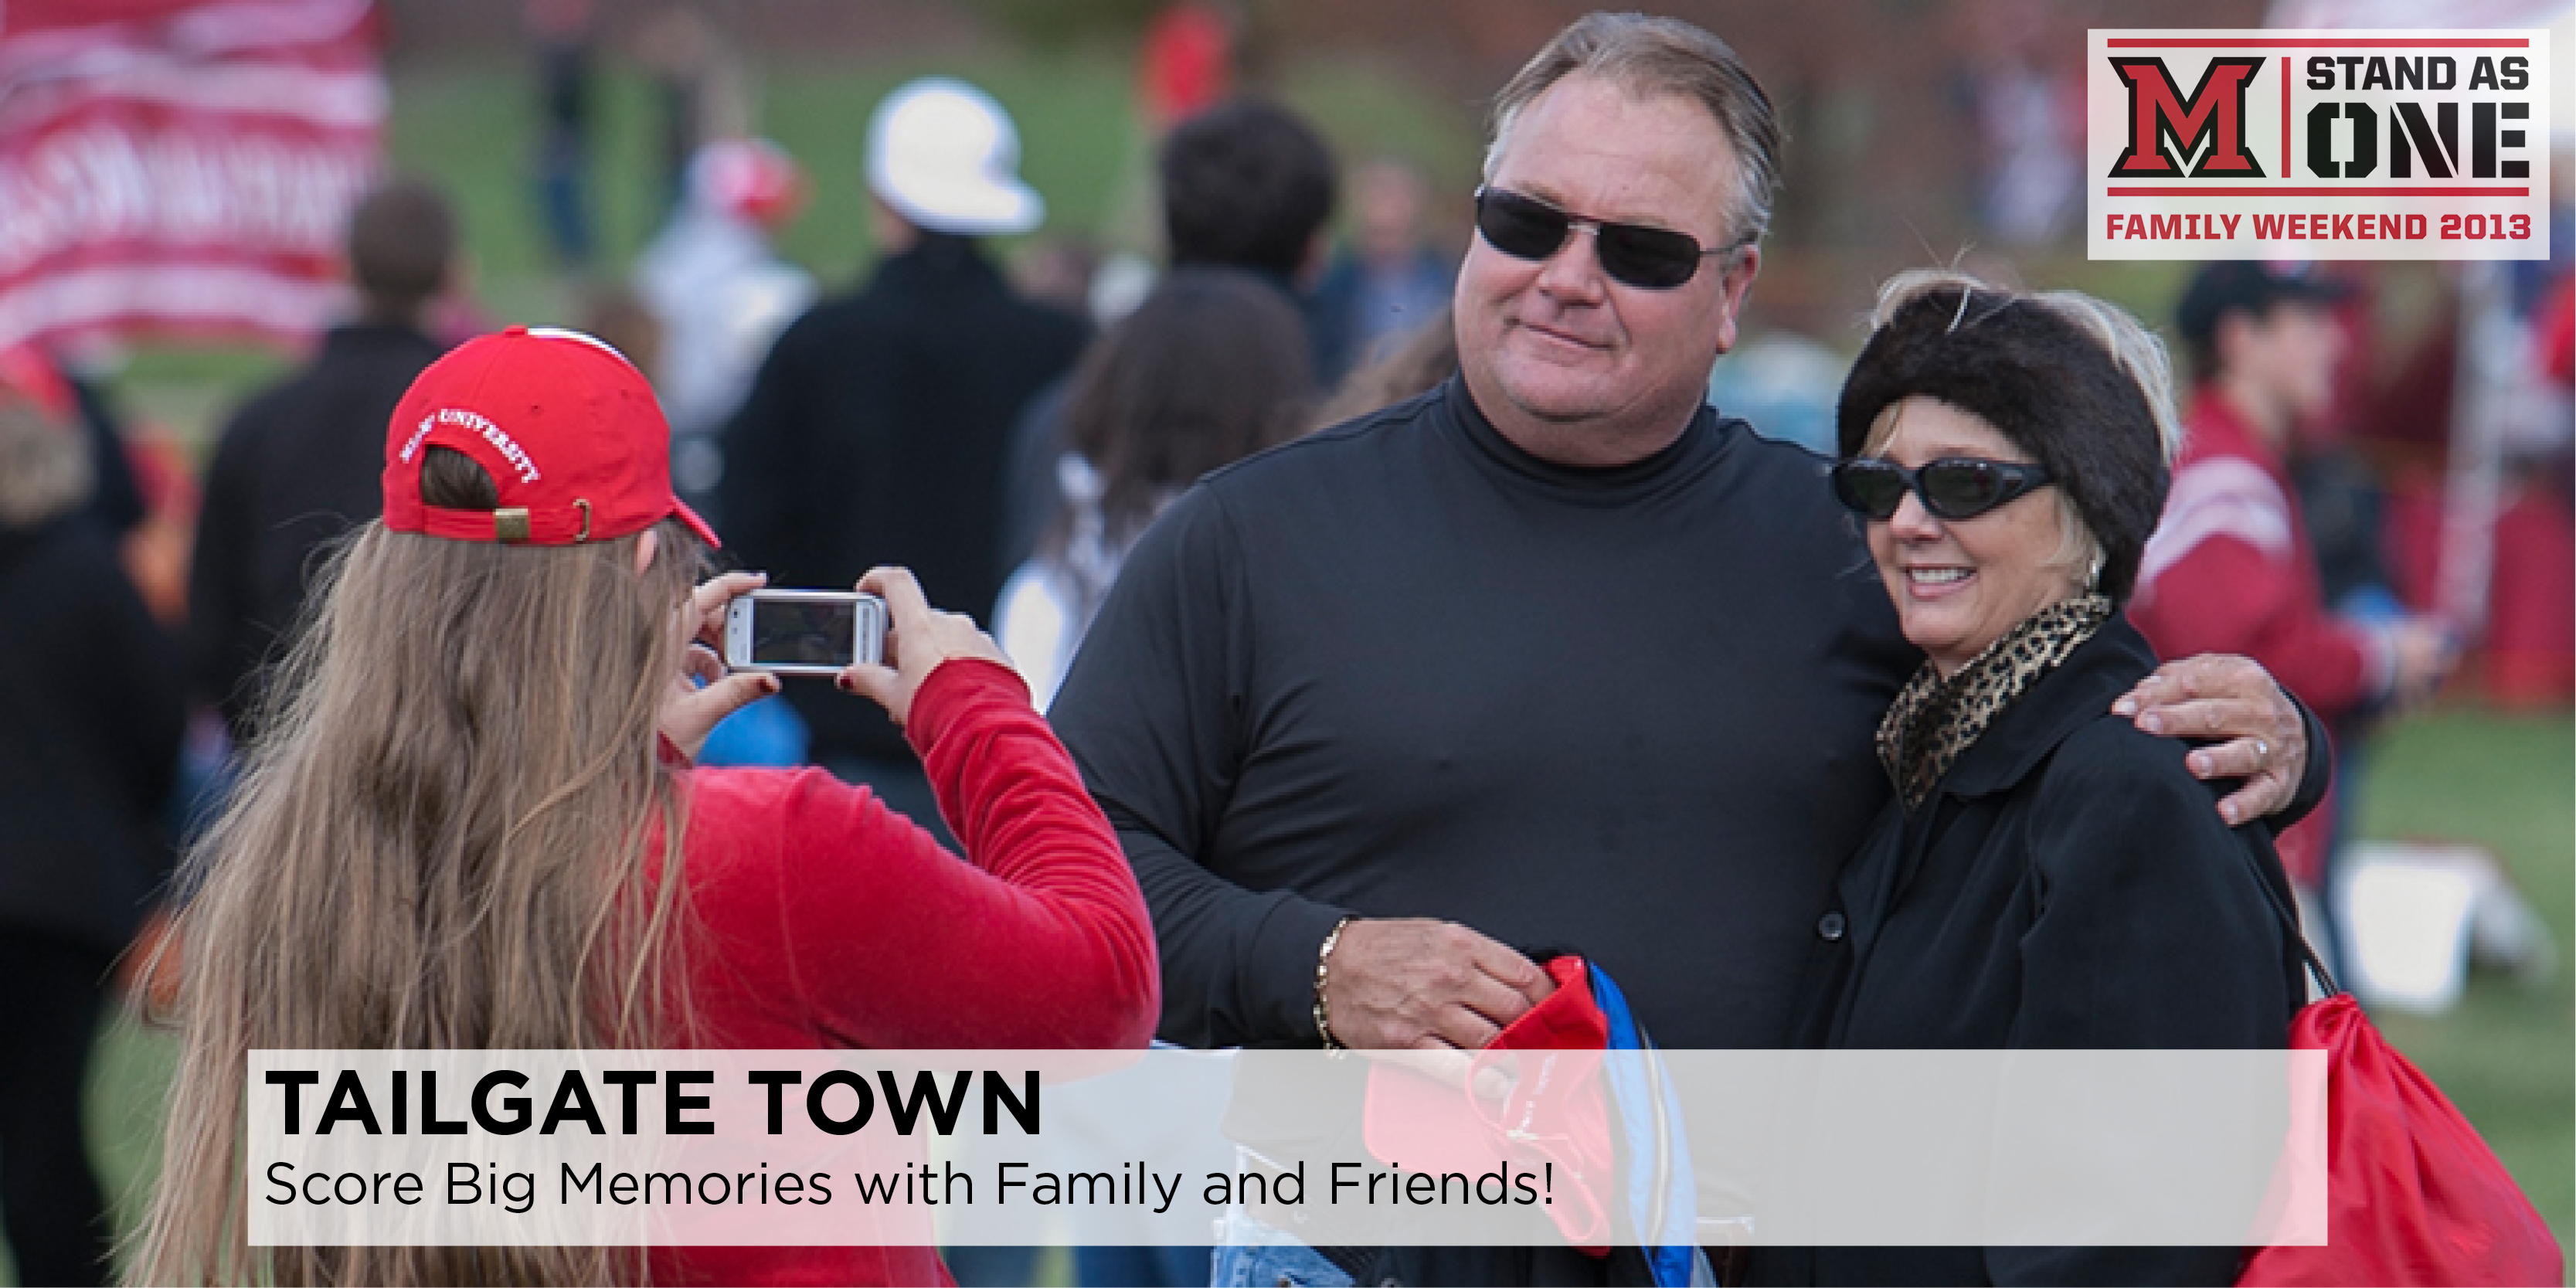 TAILGATE TOWN--Score Big Memories with Family and Friends